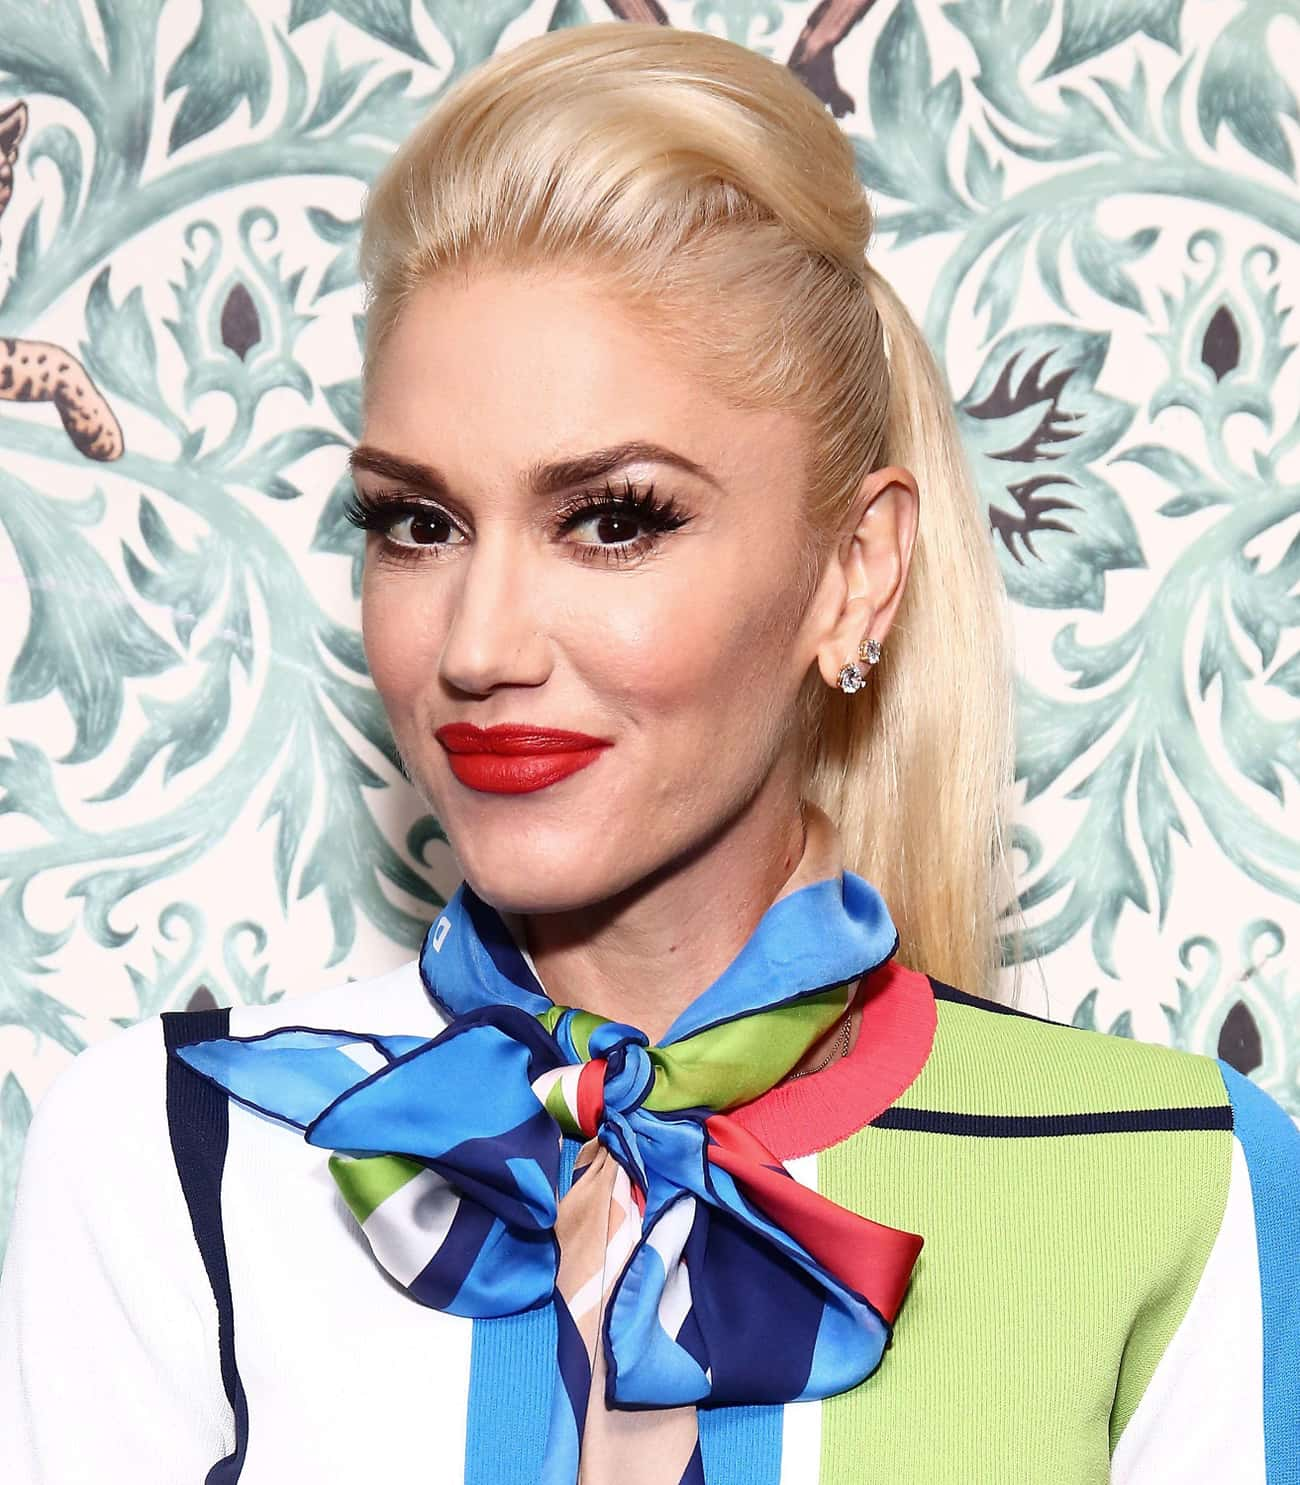 Gwen Stefani is listed (or ranked) 2 on the list 15 Celebrities Who Are Way Older Than You Realized